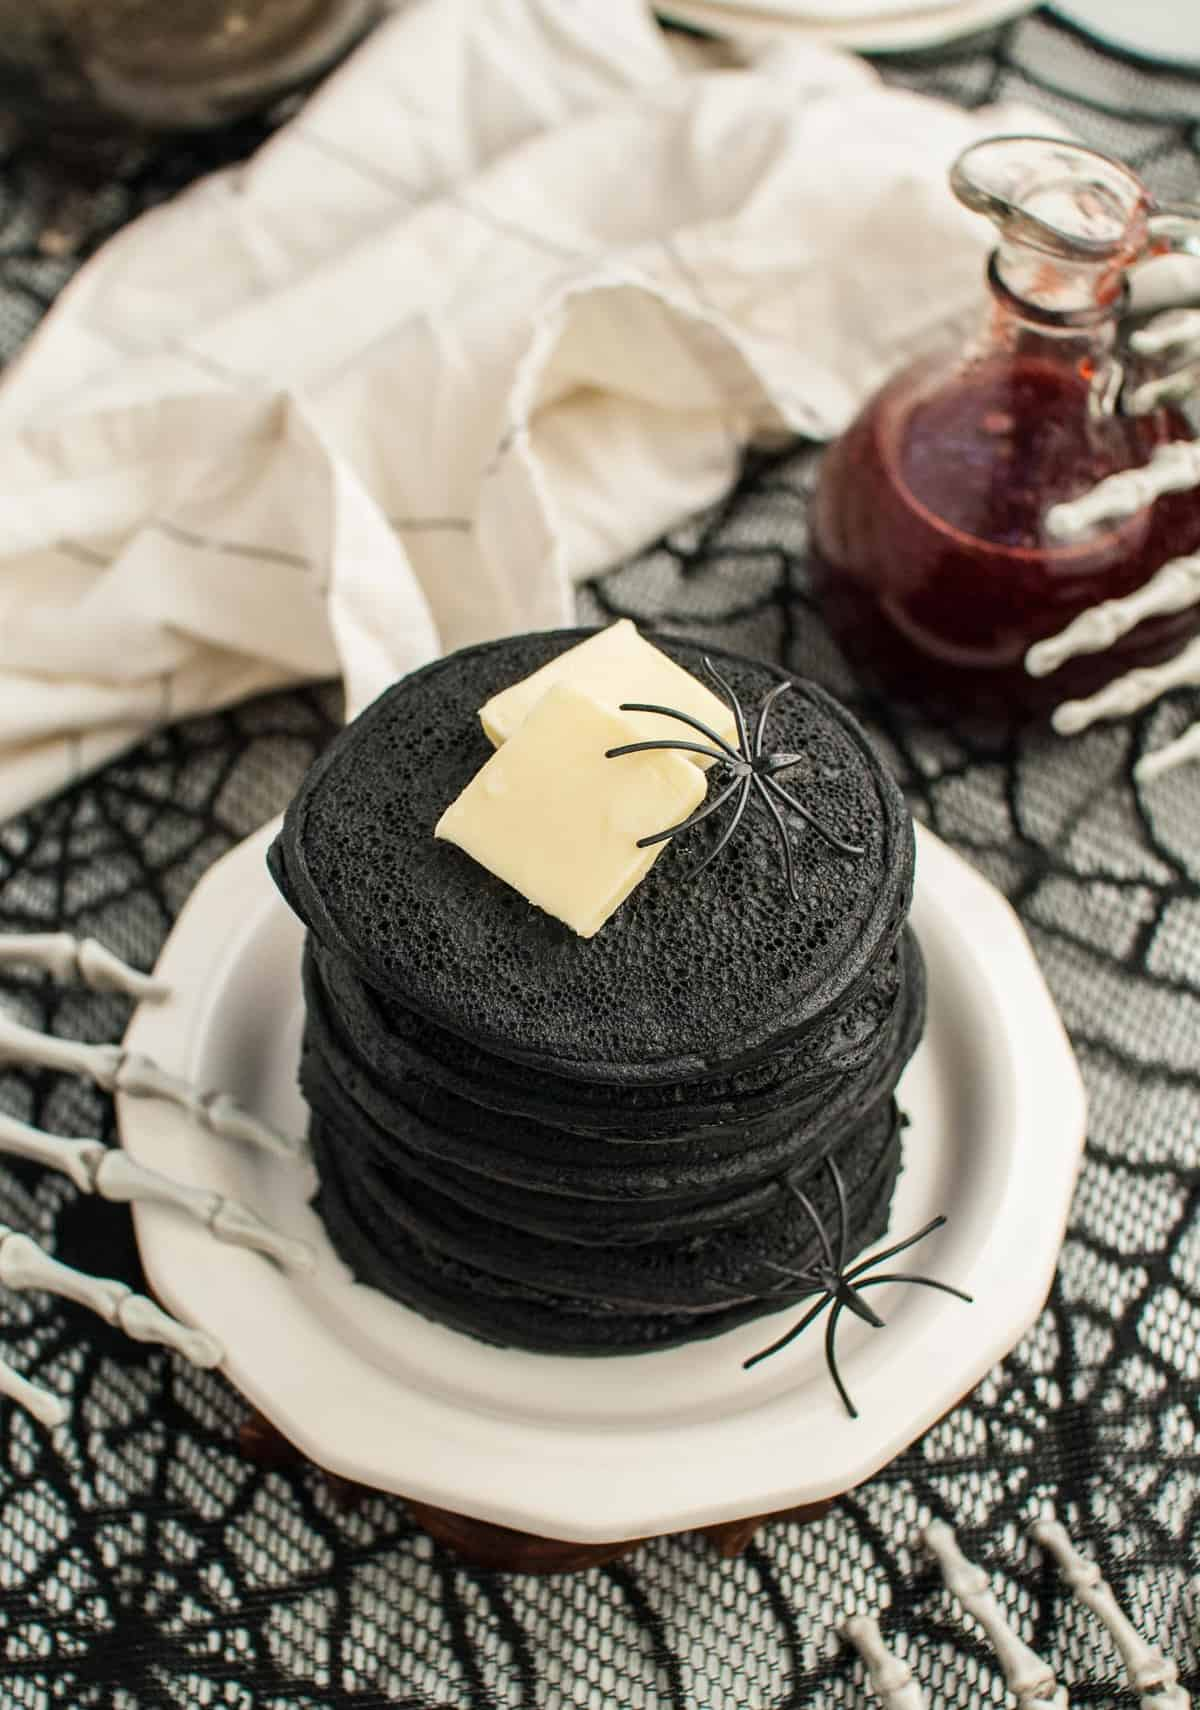 Dark black pancakes in a stack, topped with butter, surrounded by skeleton hands and fake spiders.